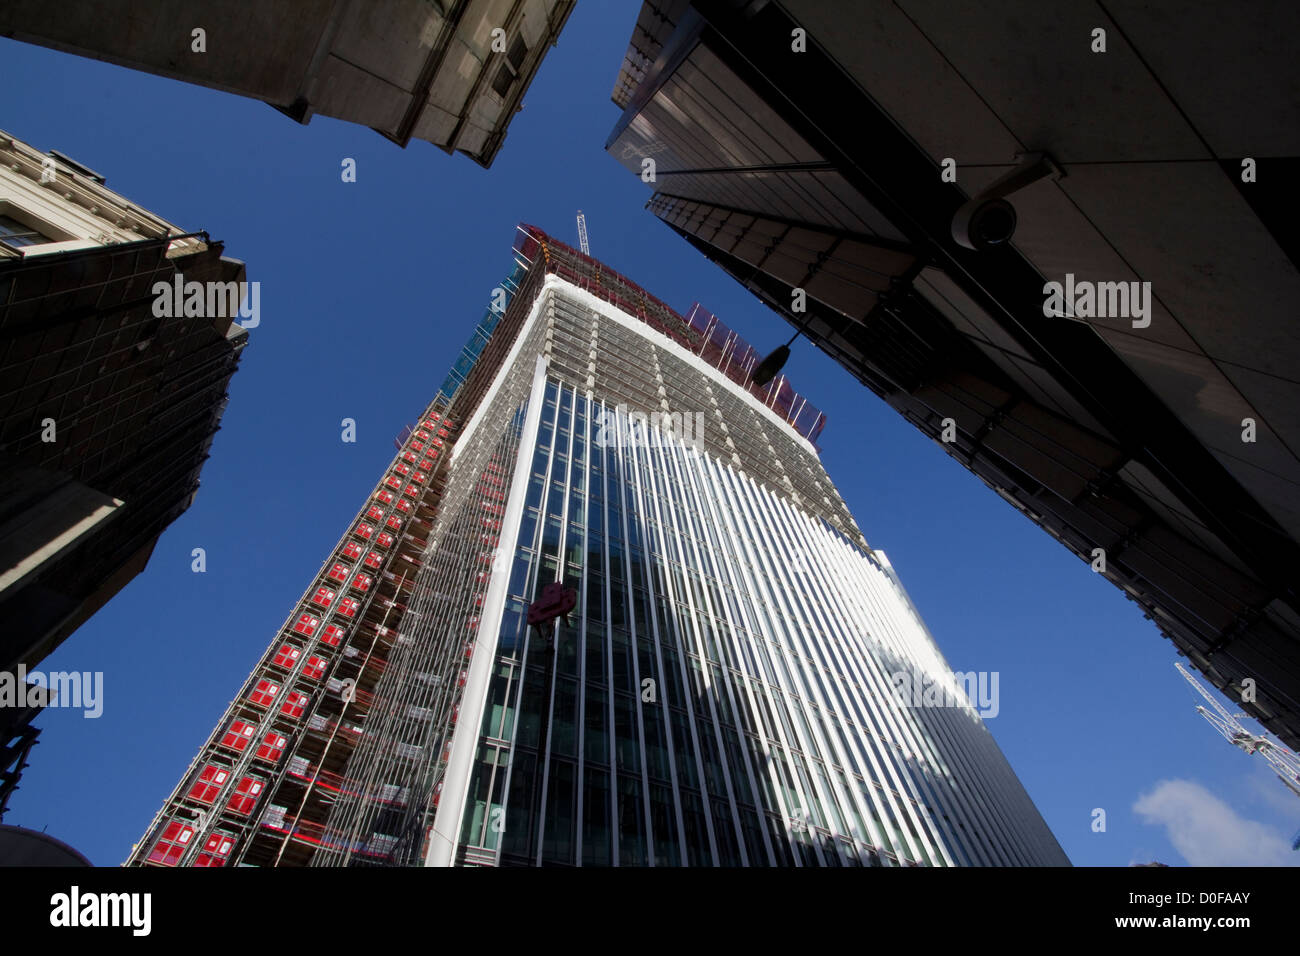 20 Fenchurch Street skyscraper under construction on Fenchurch Street in London. aka Walkie-Talkie and the Pint - Stock Image